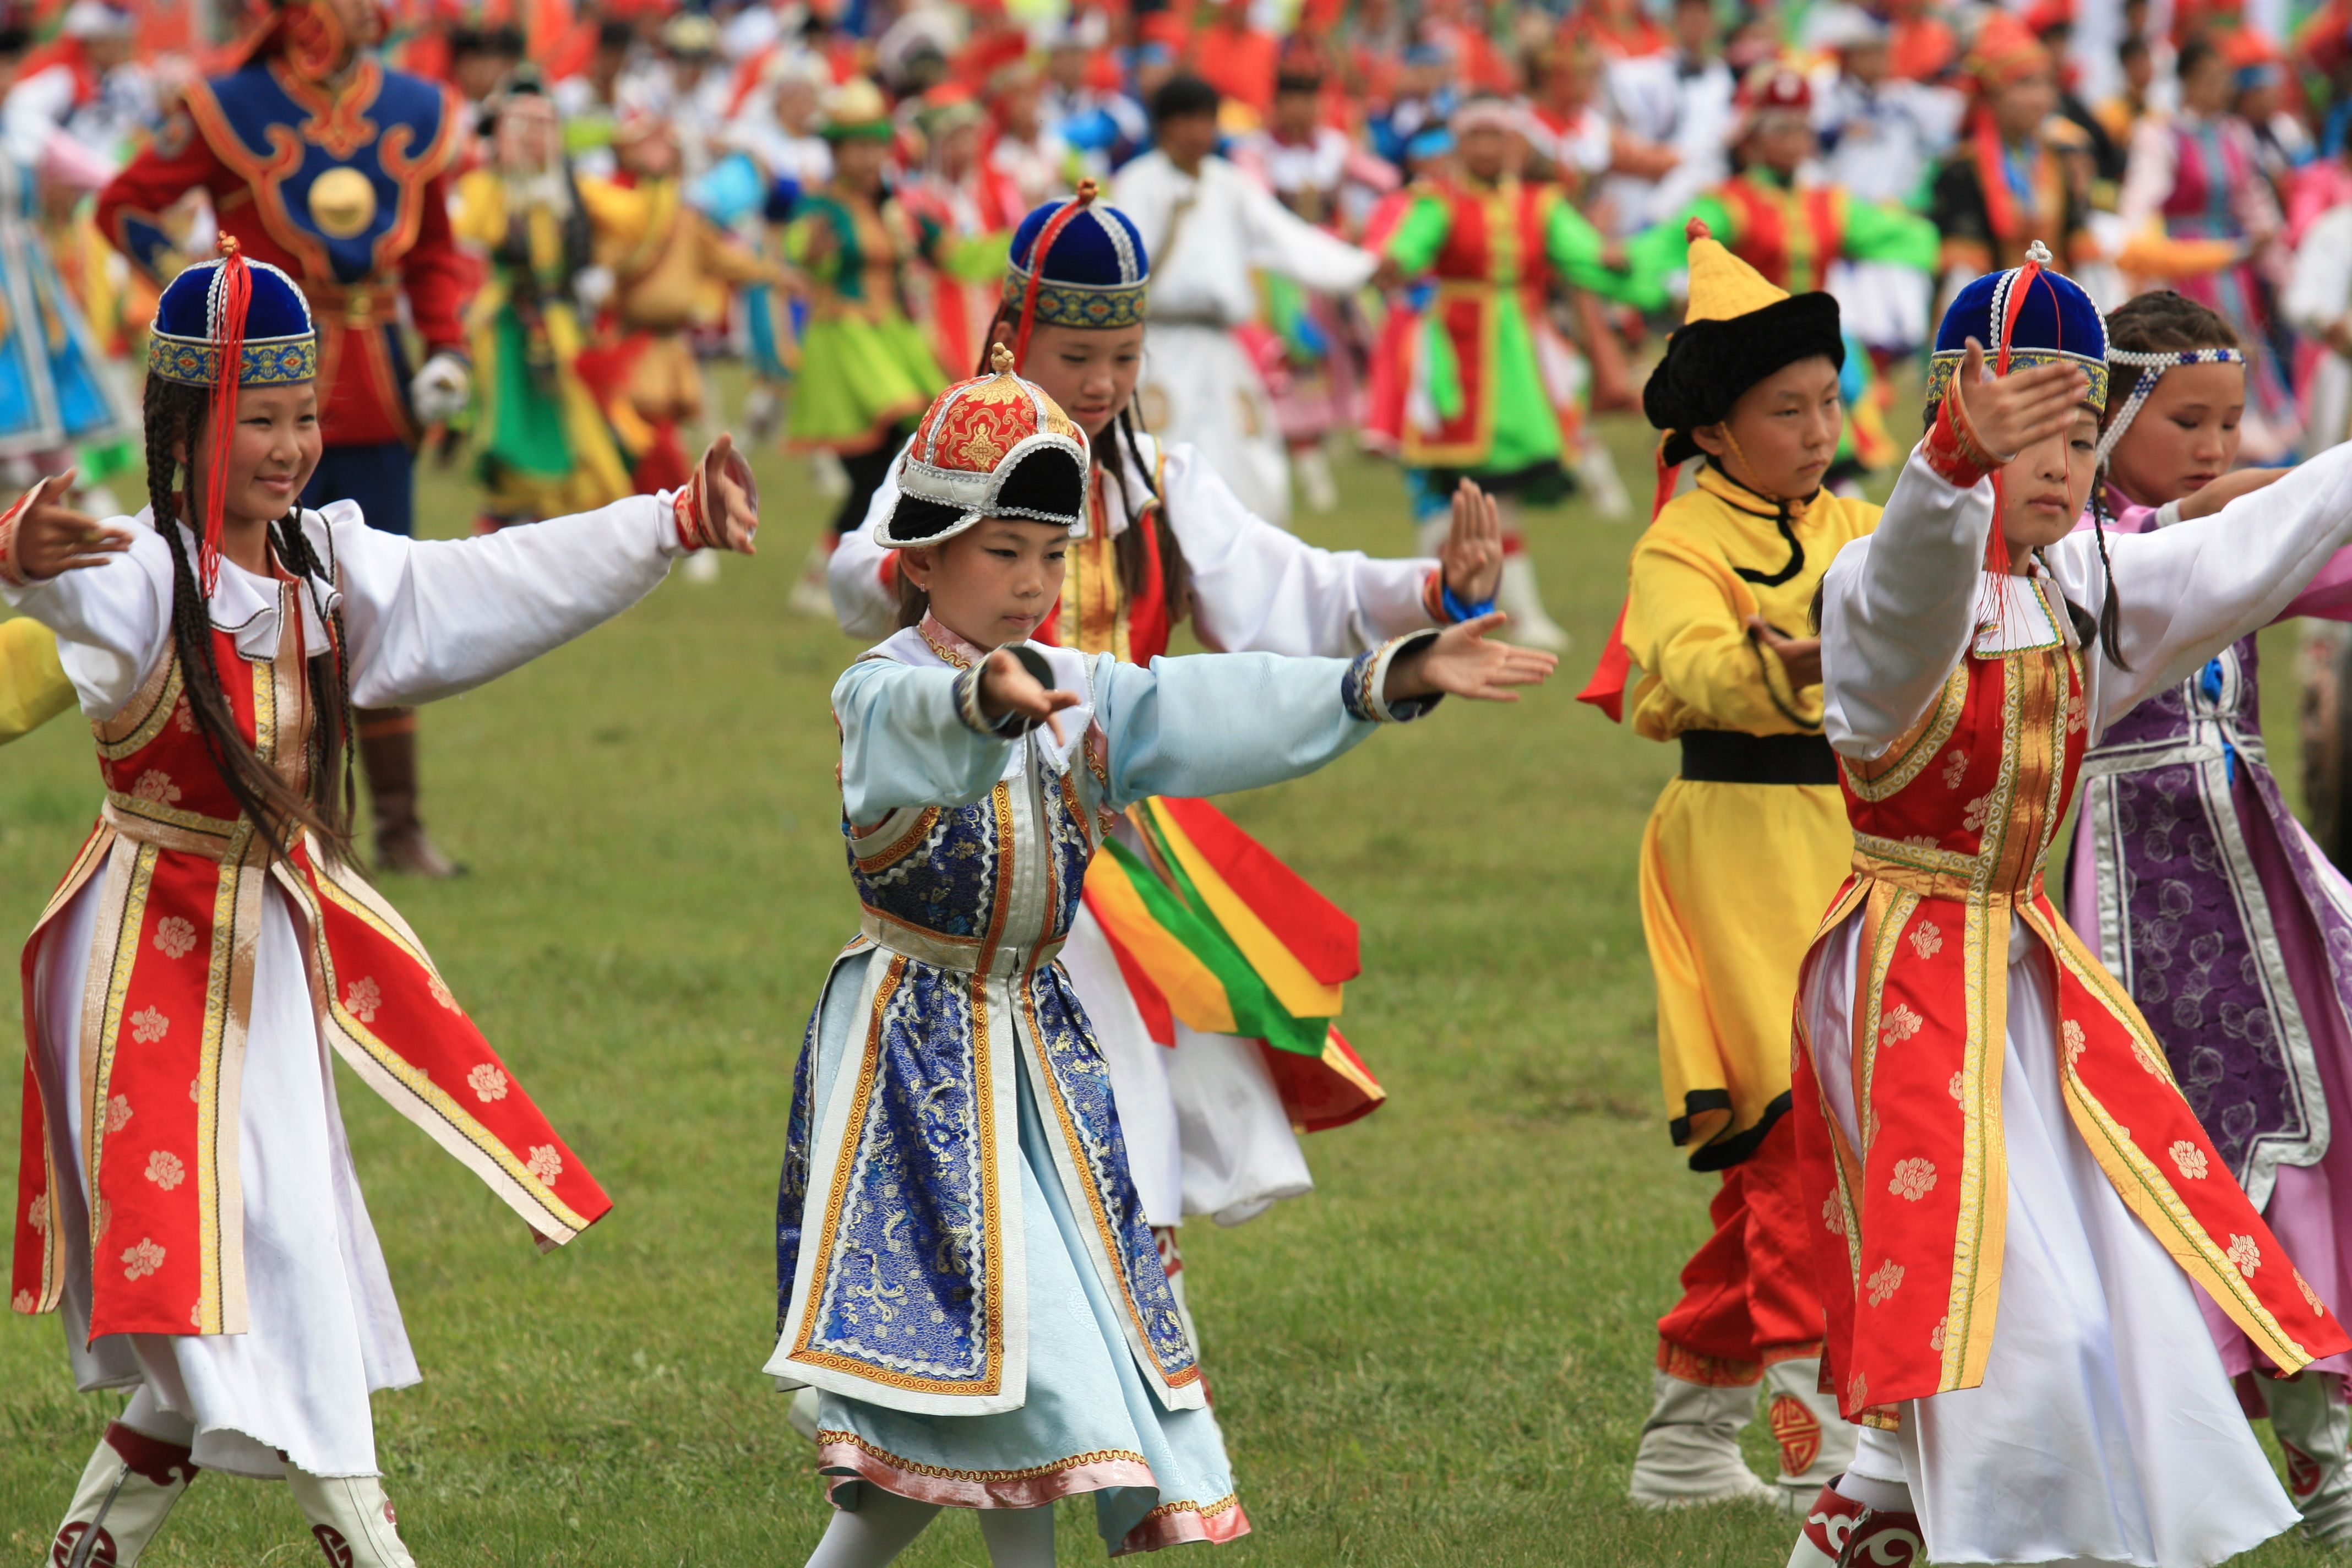 The cultural and colourful sights of the Nadaam Festival in Mongolia. This extraordinary athletic sports festival formerly commemorates the 1921 revolution when Mongolia was declared a free country.